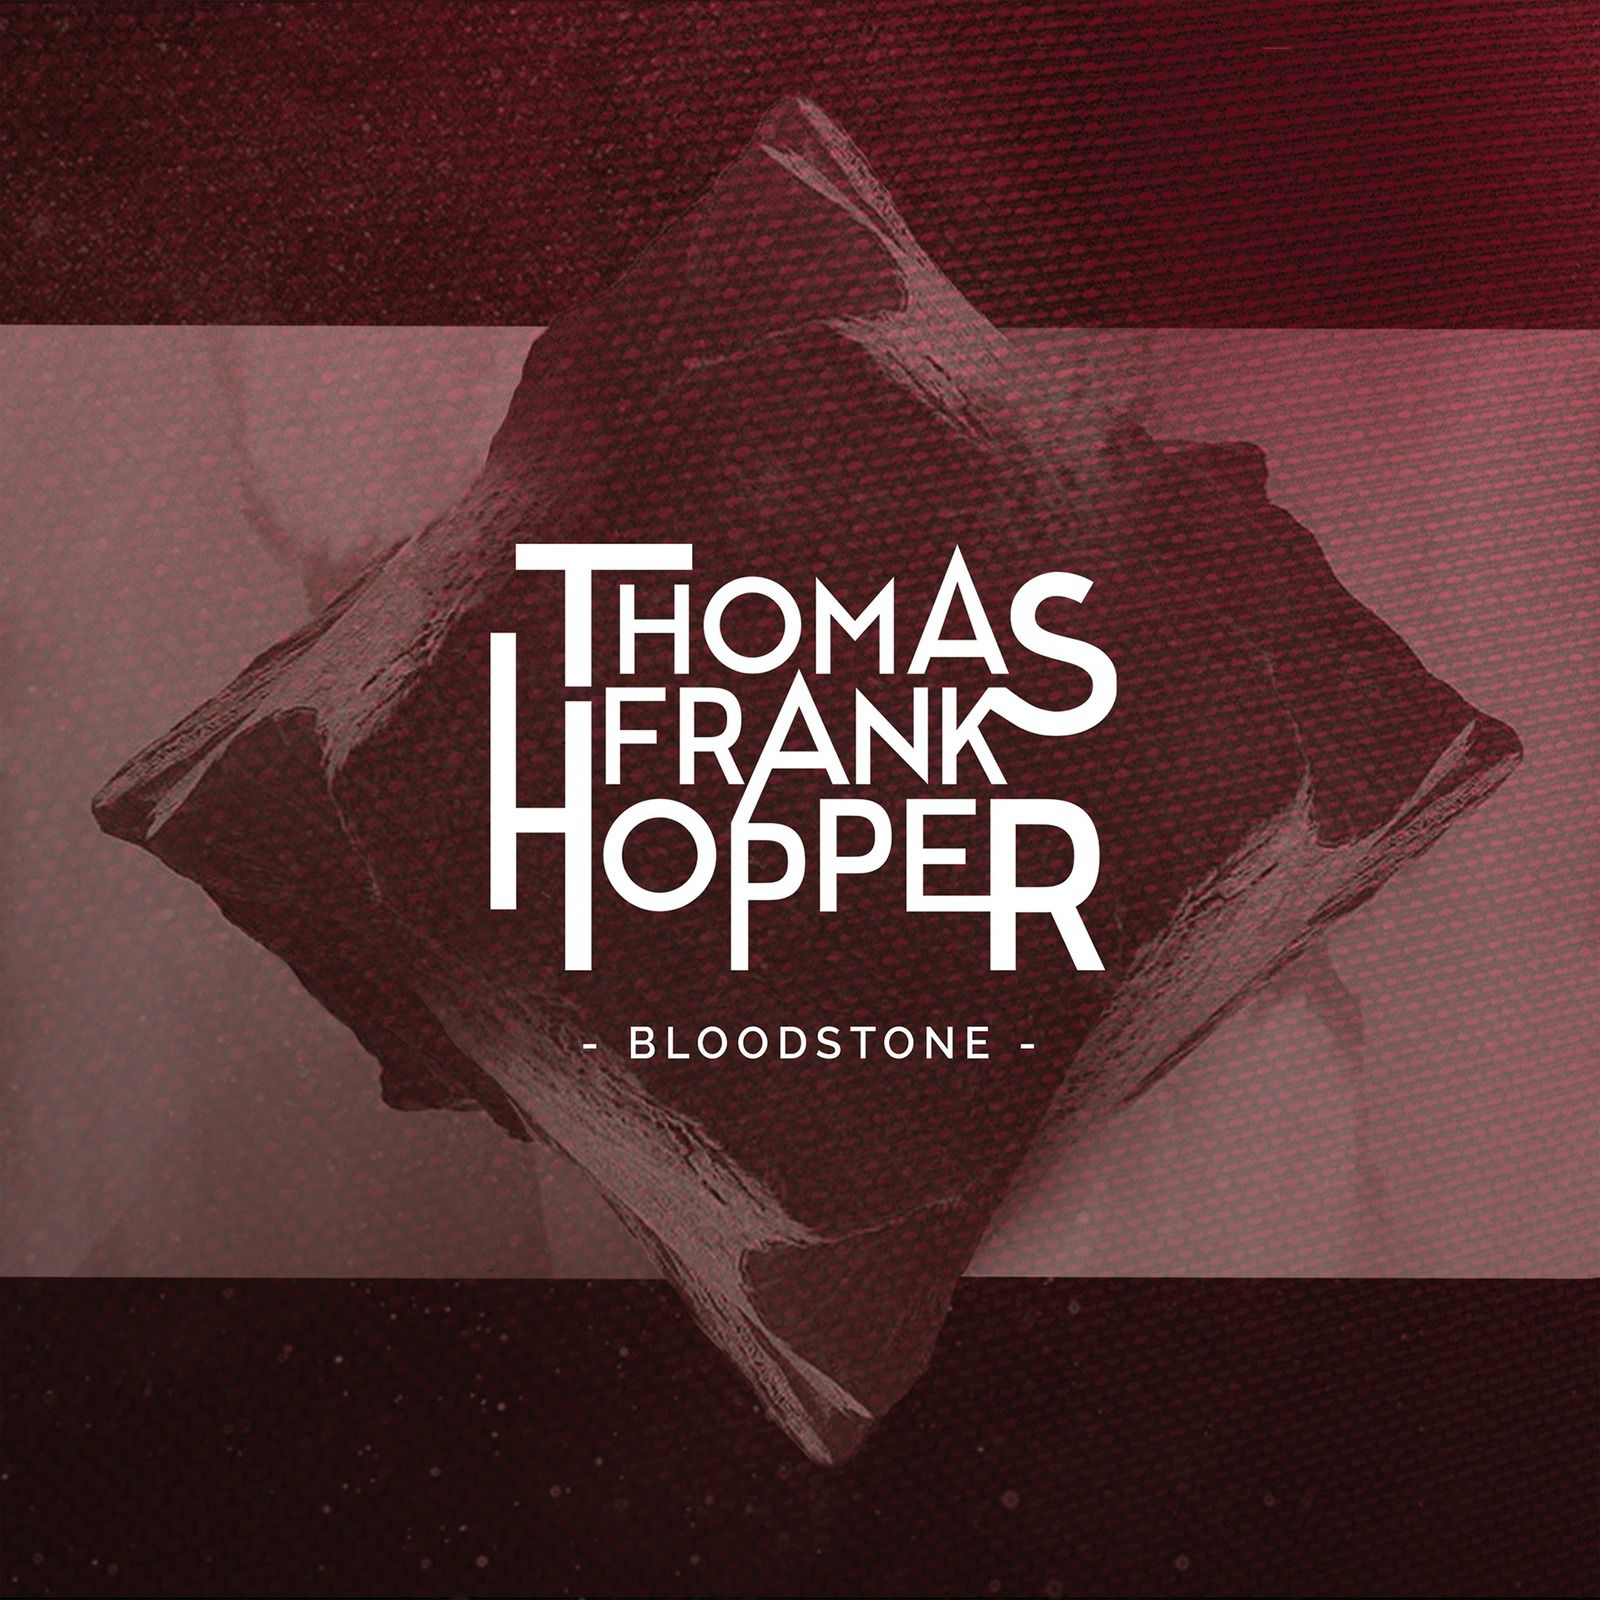 🎵 THOMAS FRANK HOPPER New album 'Bloodstone' out on March 4th 2021